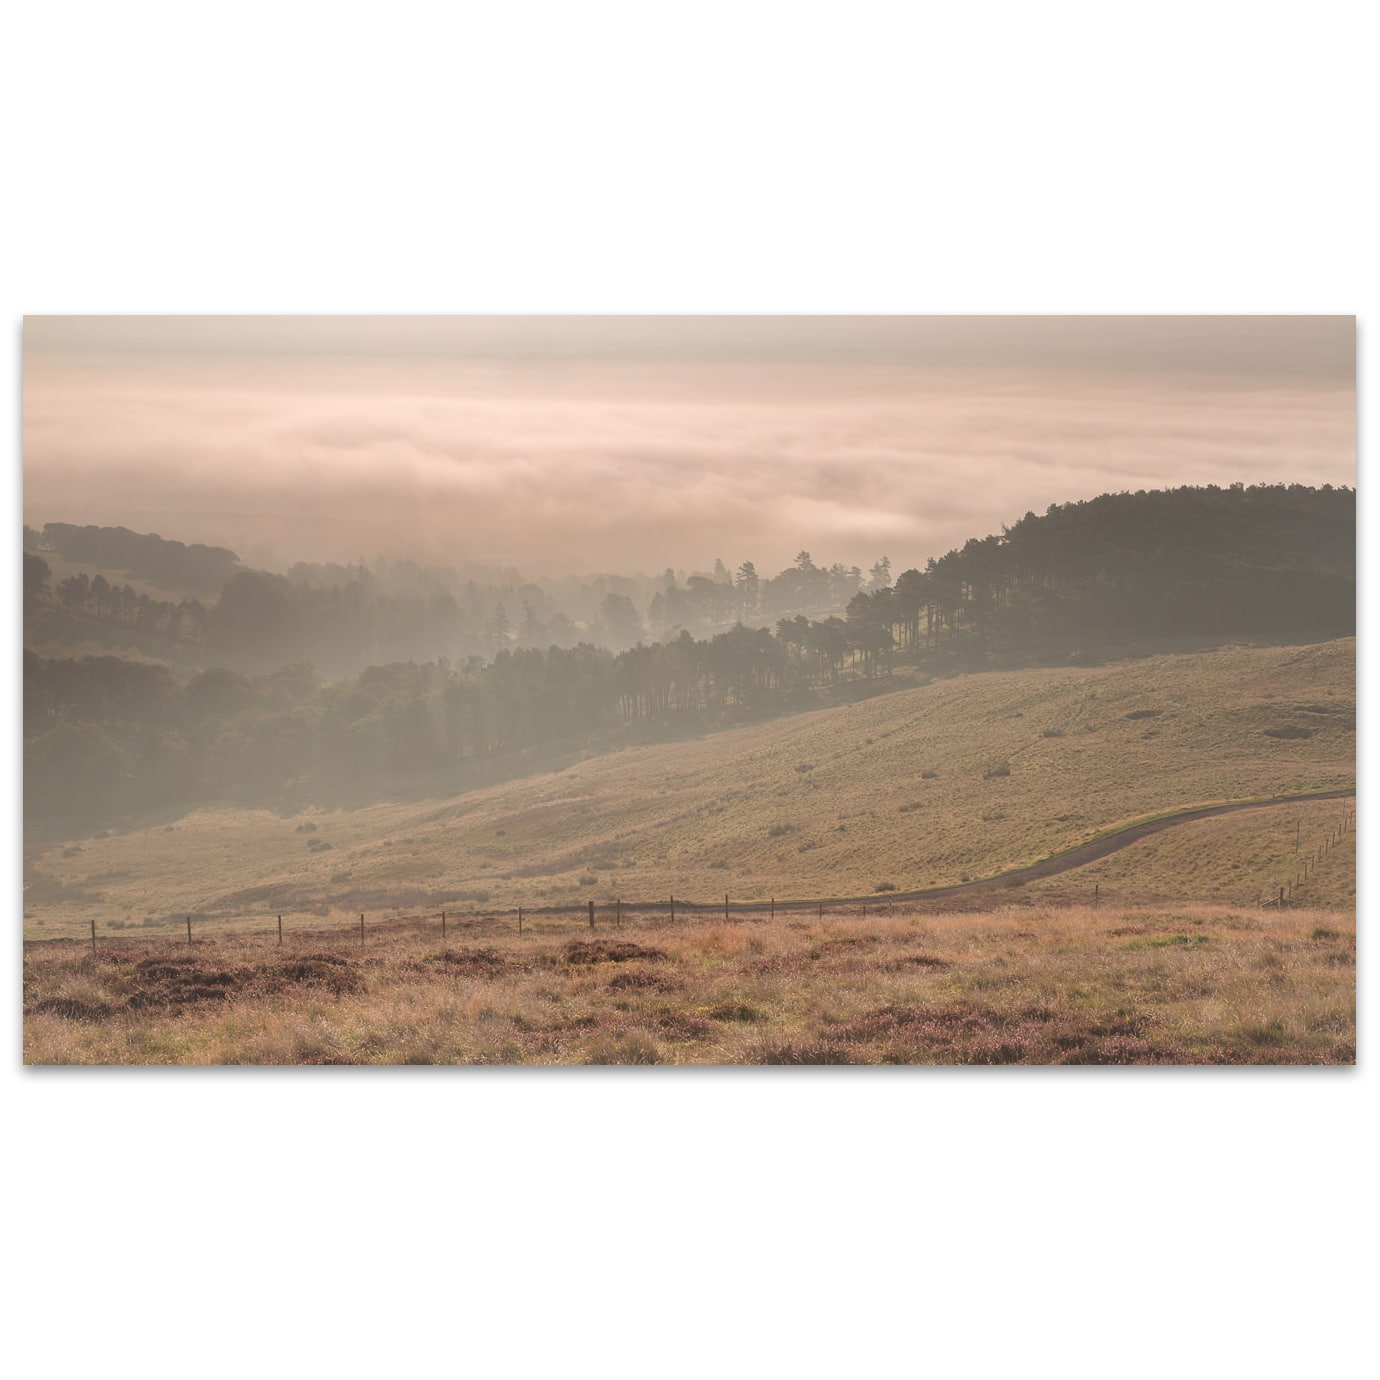 Misty sunrise on the Pentland hills near Edinburgh in Scotland